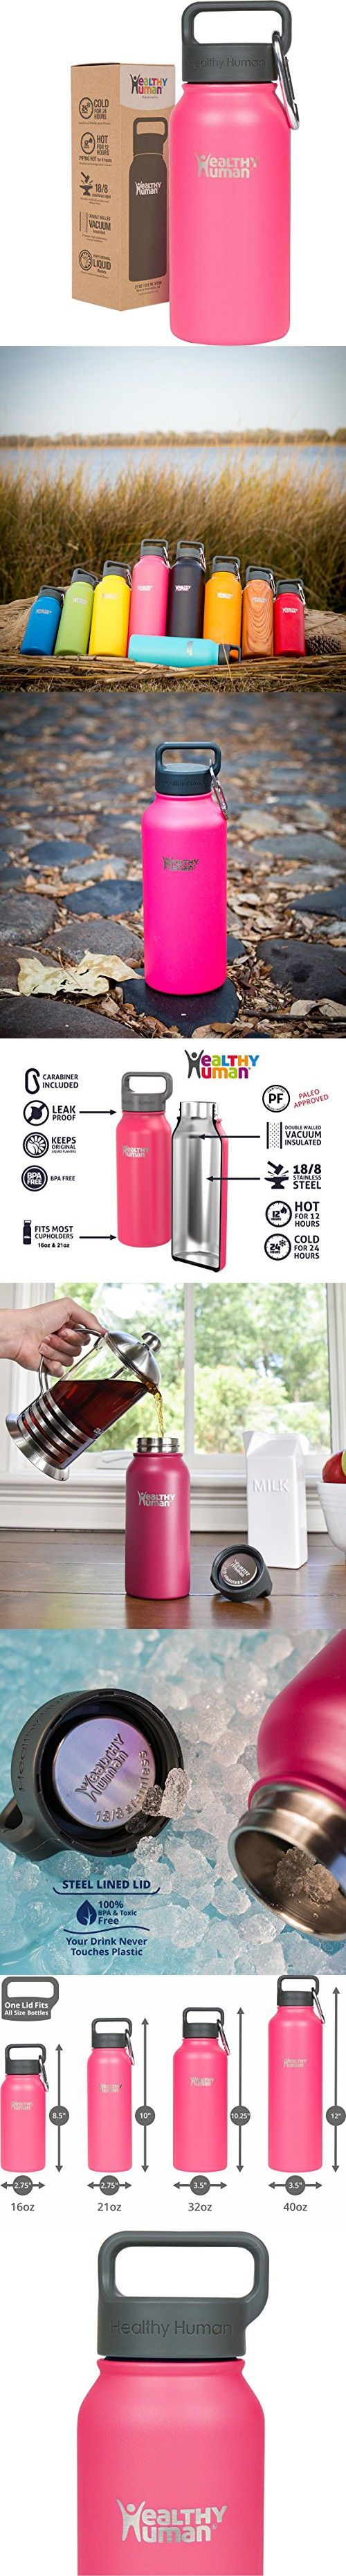 Healthy Human 16 oz Water Bottle - Cold 24 Hrs, Hot 12 Hrs. 4 Sizes & 12 Colors. Double Walled Vacuum Insulated Stainless Steel Thermos Flask with Carabiner & Hydro Guide. Color: Hawaiian Pink